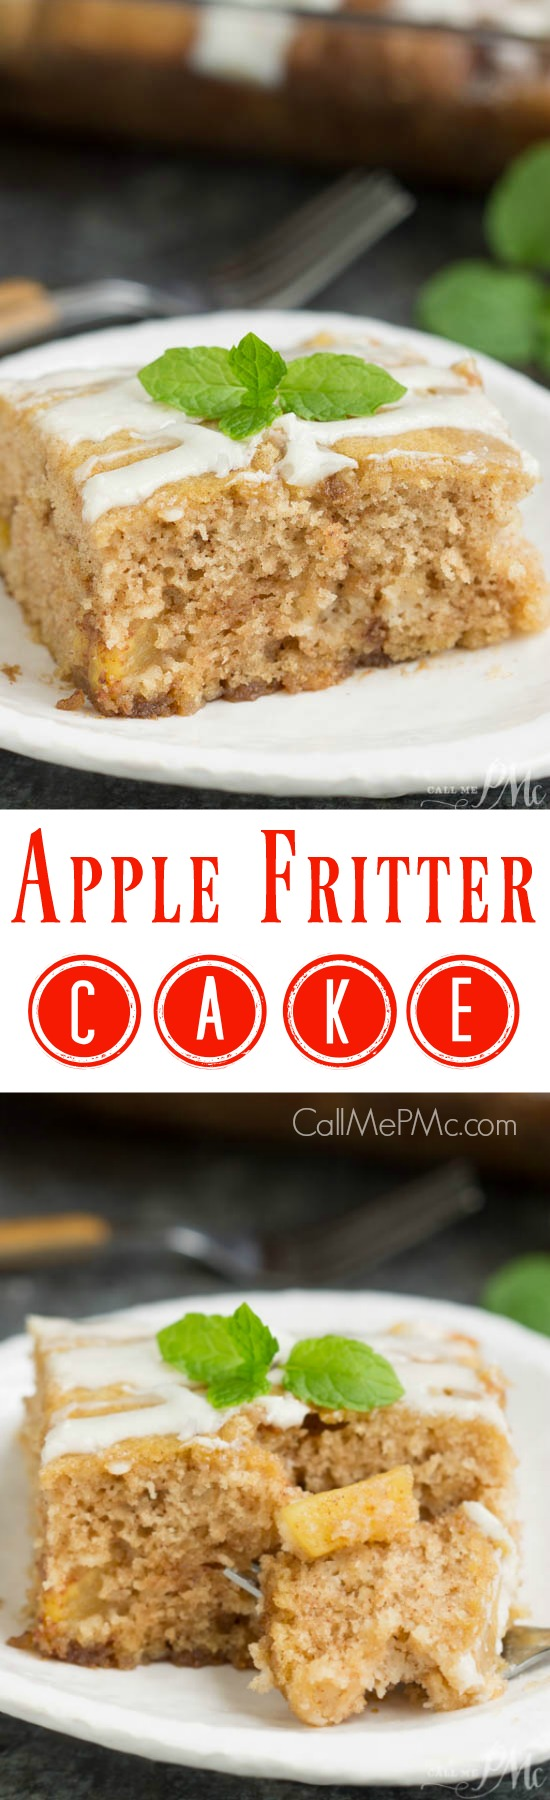 Apple Fritter Cake is moist and bursting with flavor. It's sweet, buttery and filled with caramel apples and cinnamon. Top it off with a sugary glaze and you have a cake that tastes just like an apple fritter!